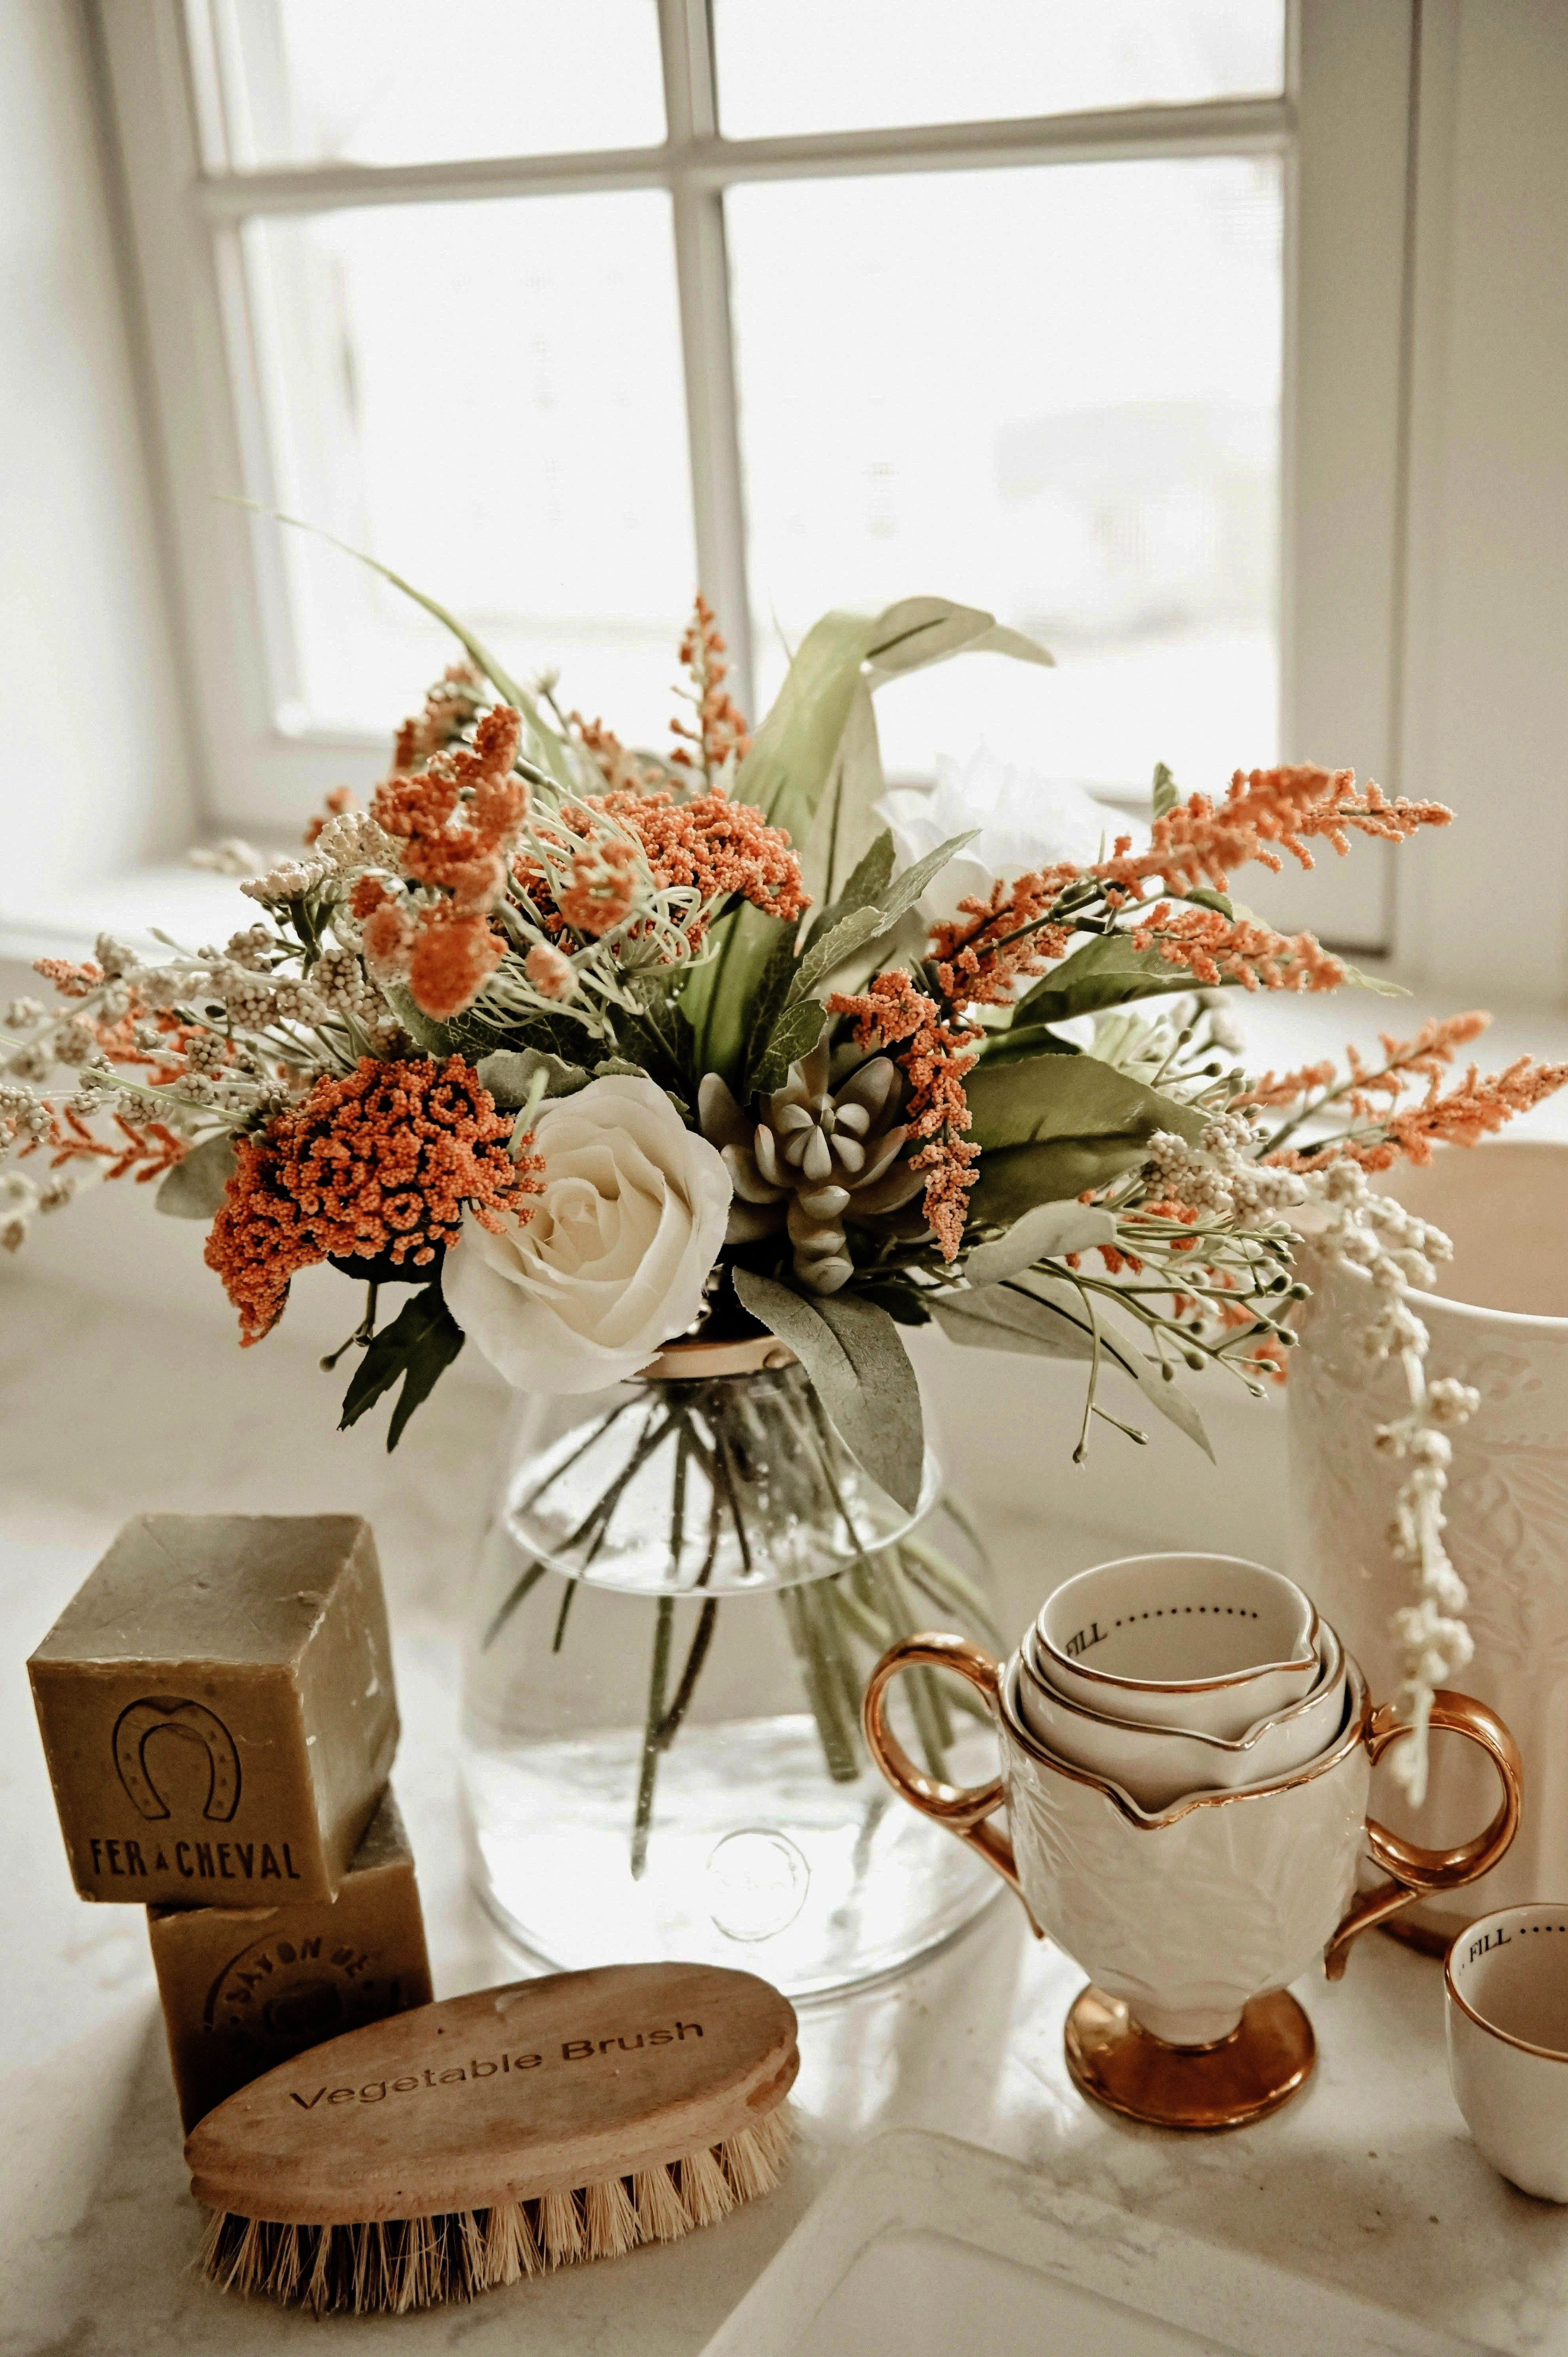 Fool Proof Faux Floral Arranging  The Easiest Trick For Fool Proof Faux Floral Arranging The Easiest Trick For Fool Proof Faux Floral Arranging  The Easiest Trick For Foo...